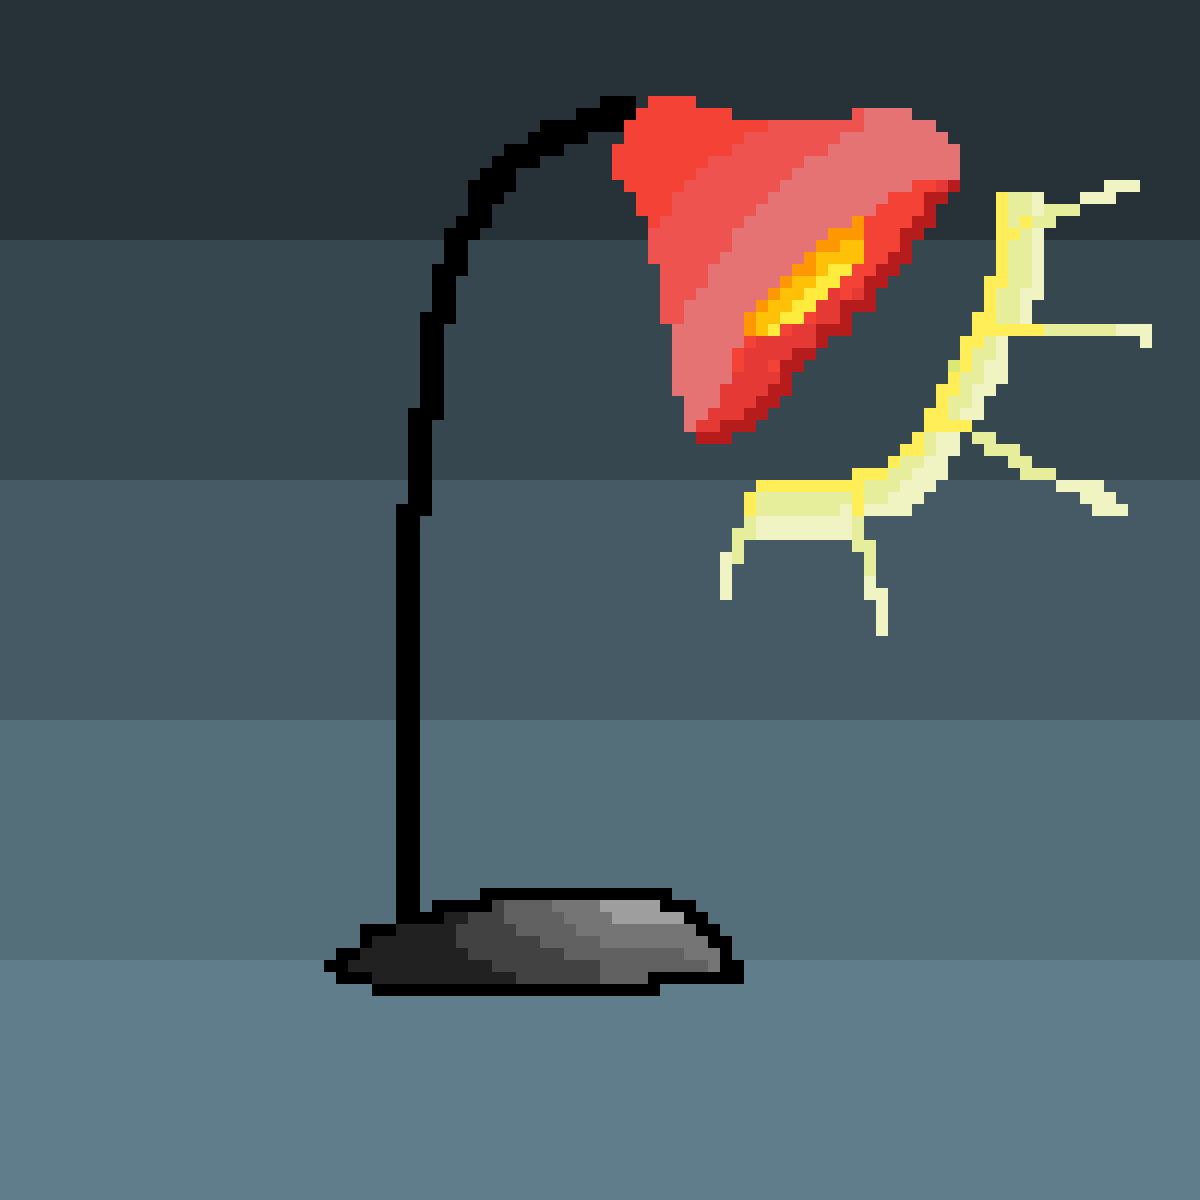 Lamp by DrawingTime